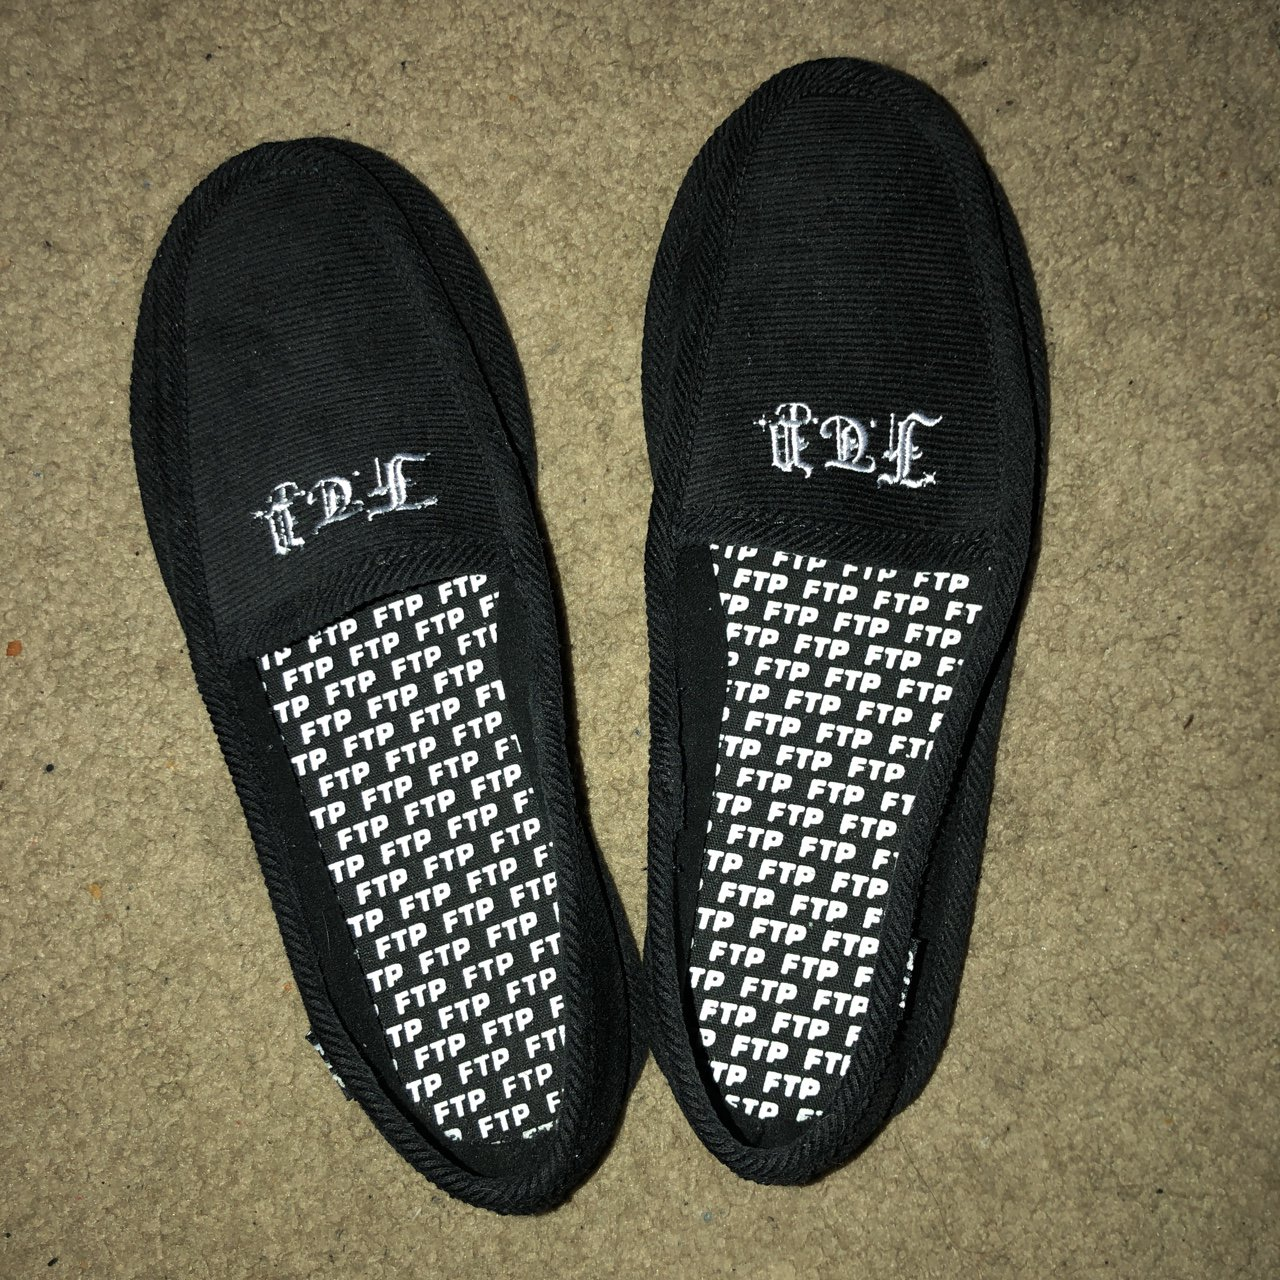 85f5cfd067e9 FTP House Slippers Size 10 9 10 condition